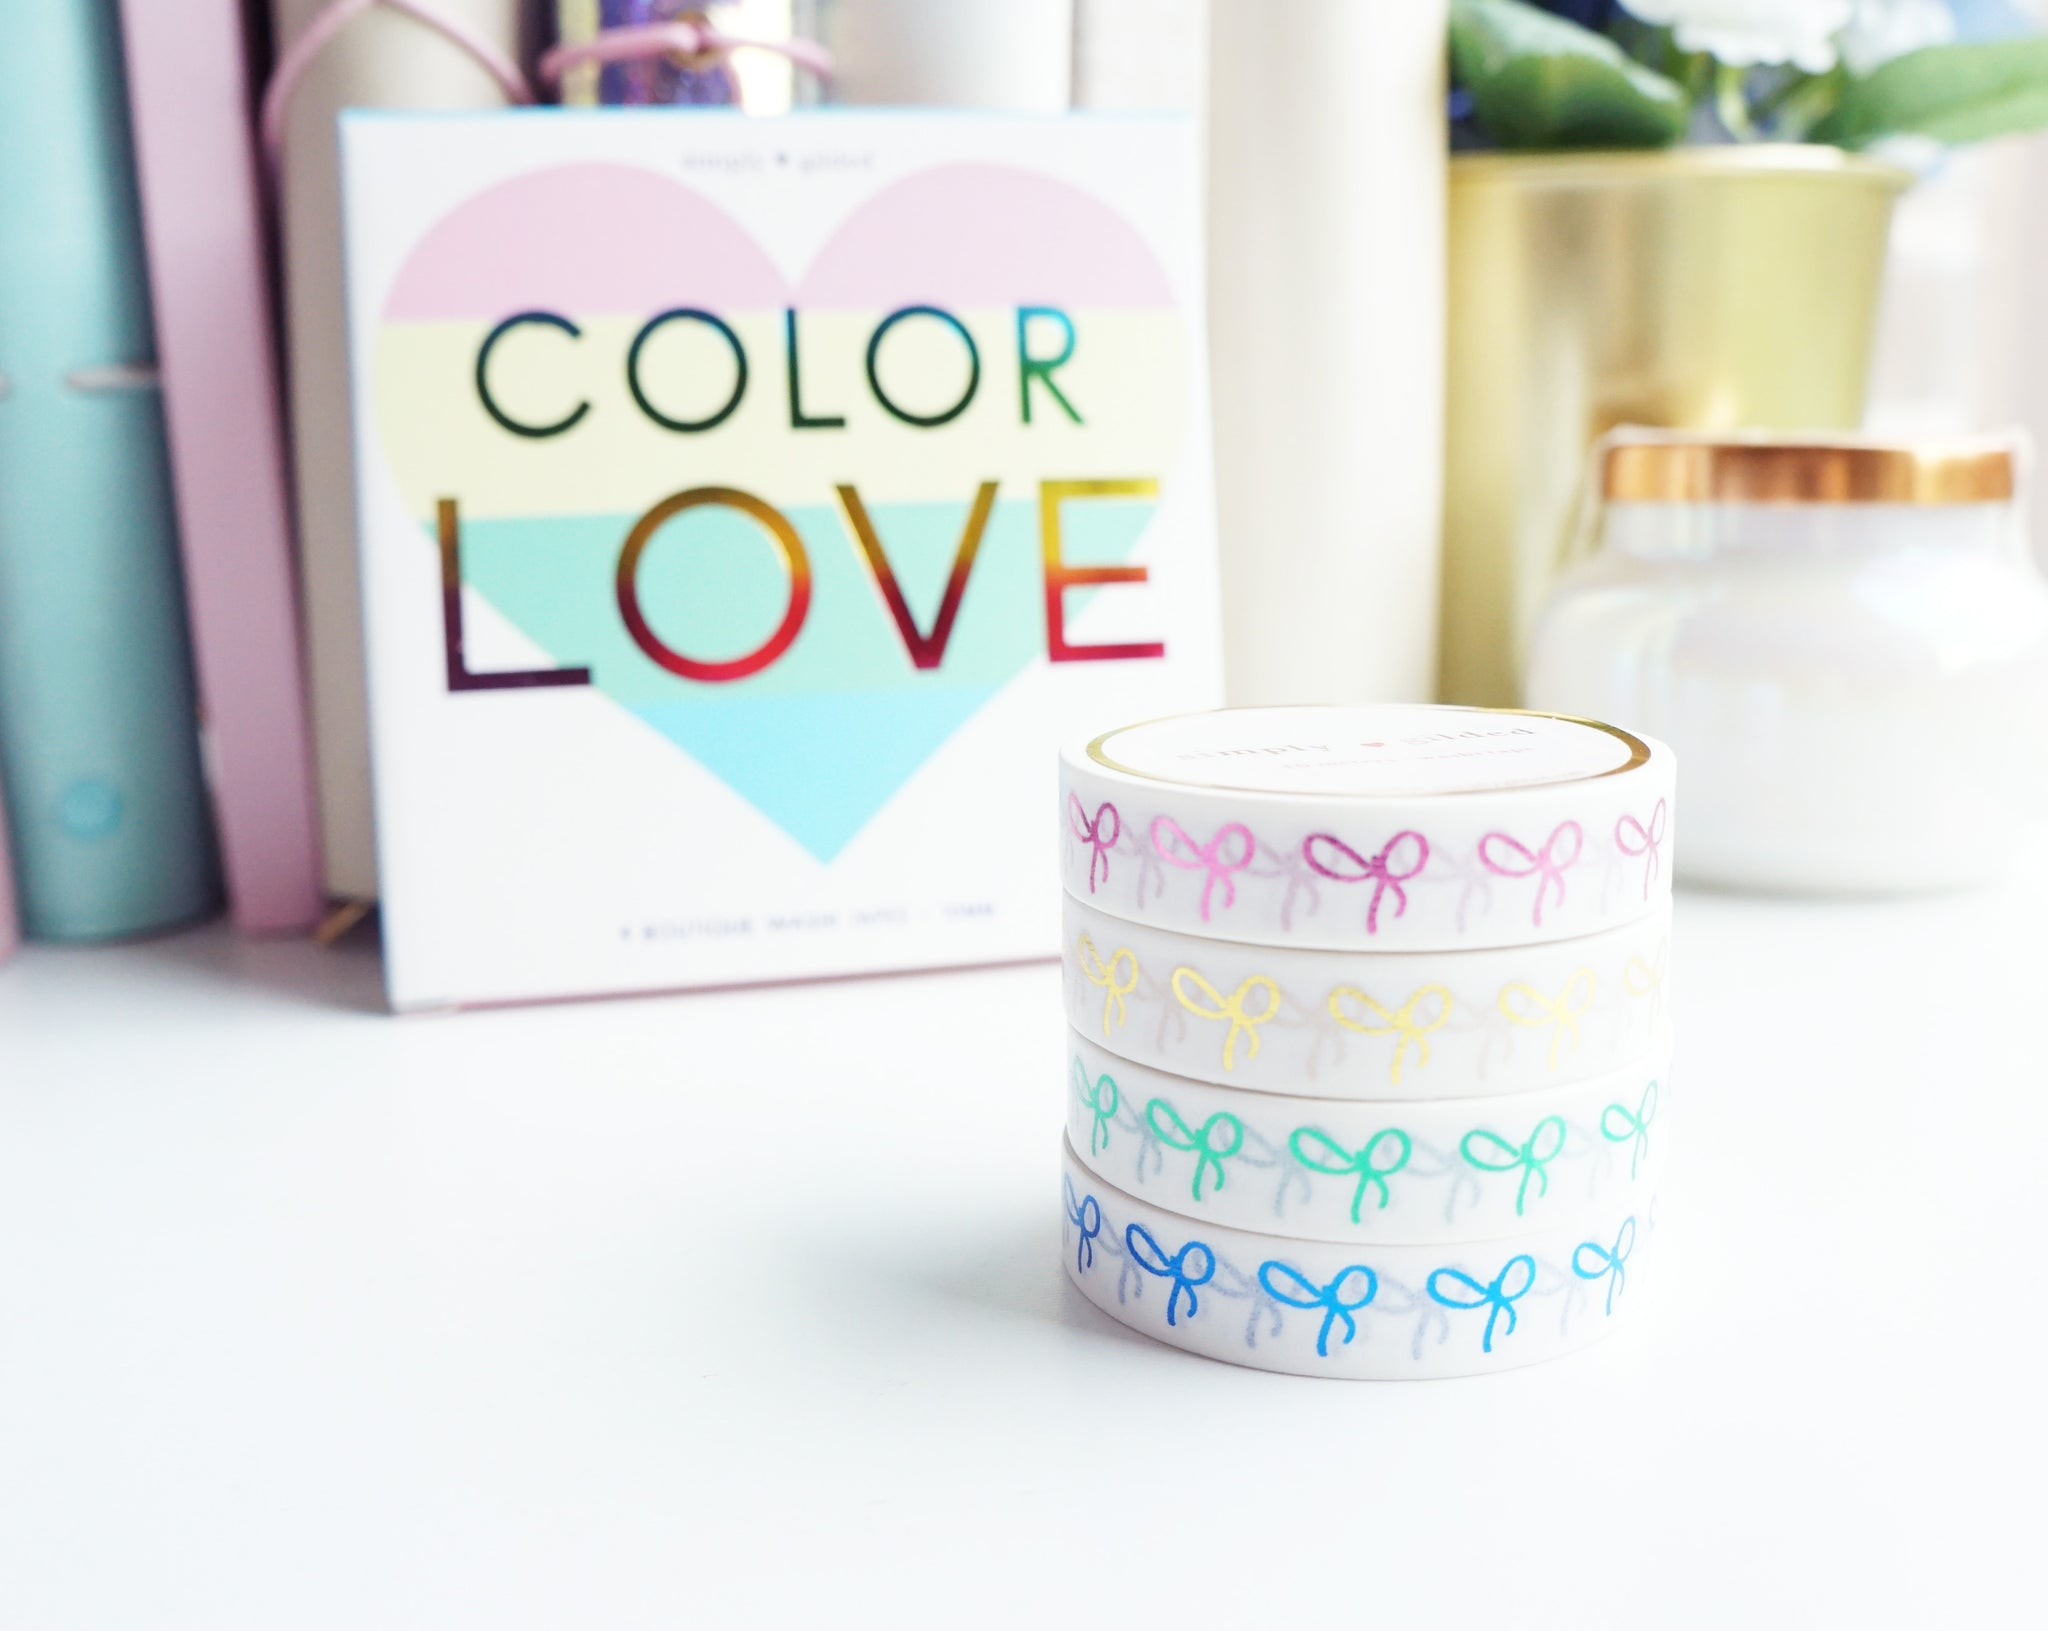 BOX SET COLOR LOVE 10mm (set of 4 washi tapes)  - (August 2 release)